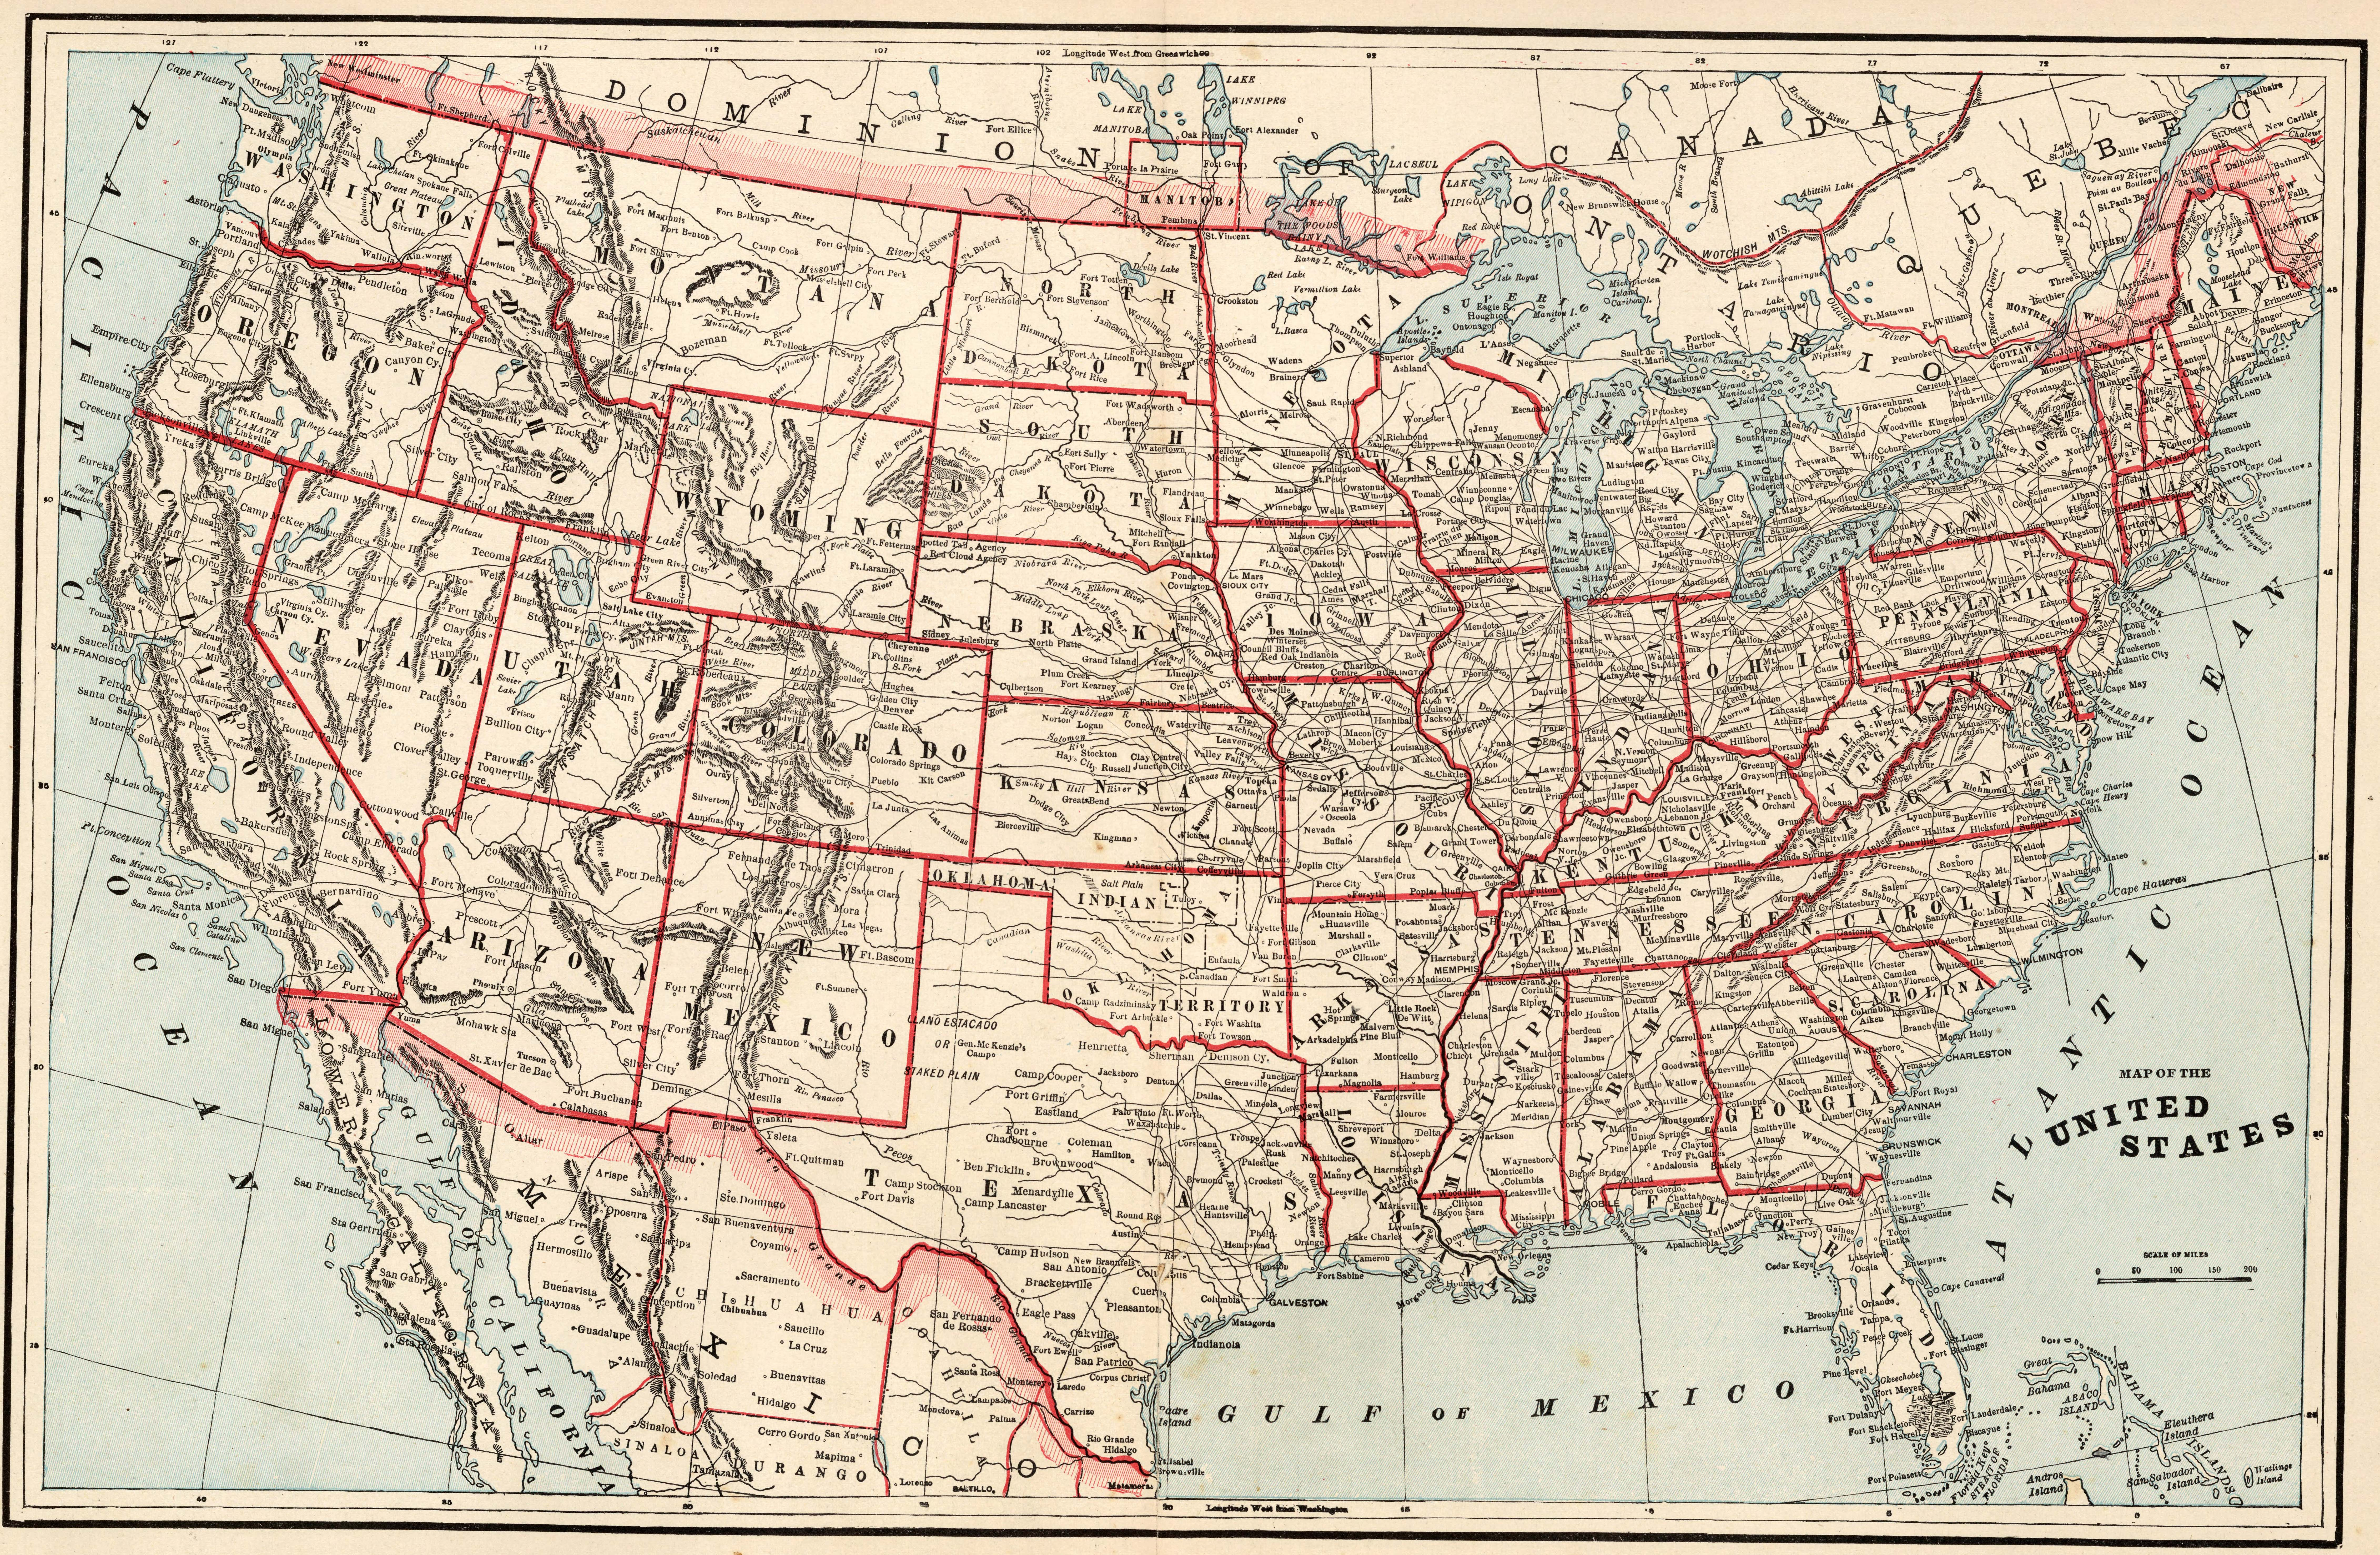 US Map Collection - Old Historical U.S. and State Maps